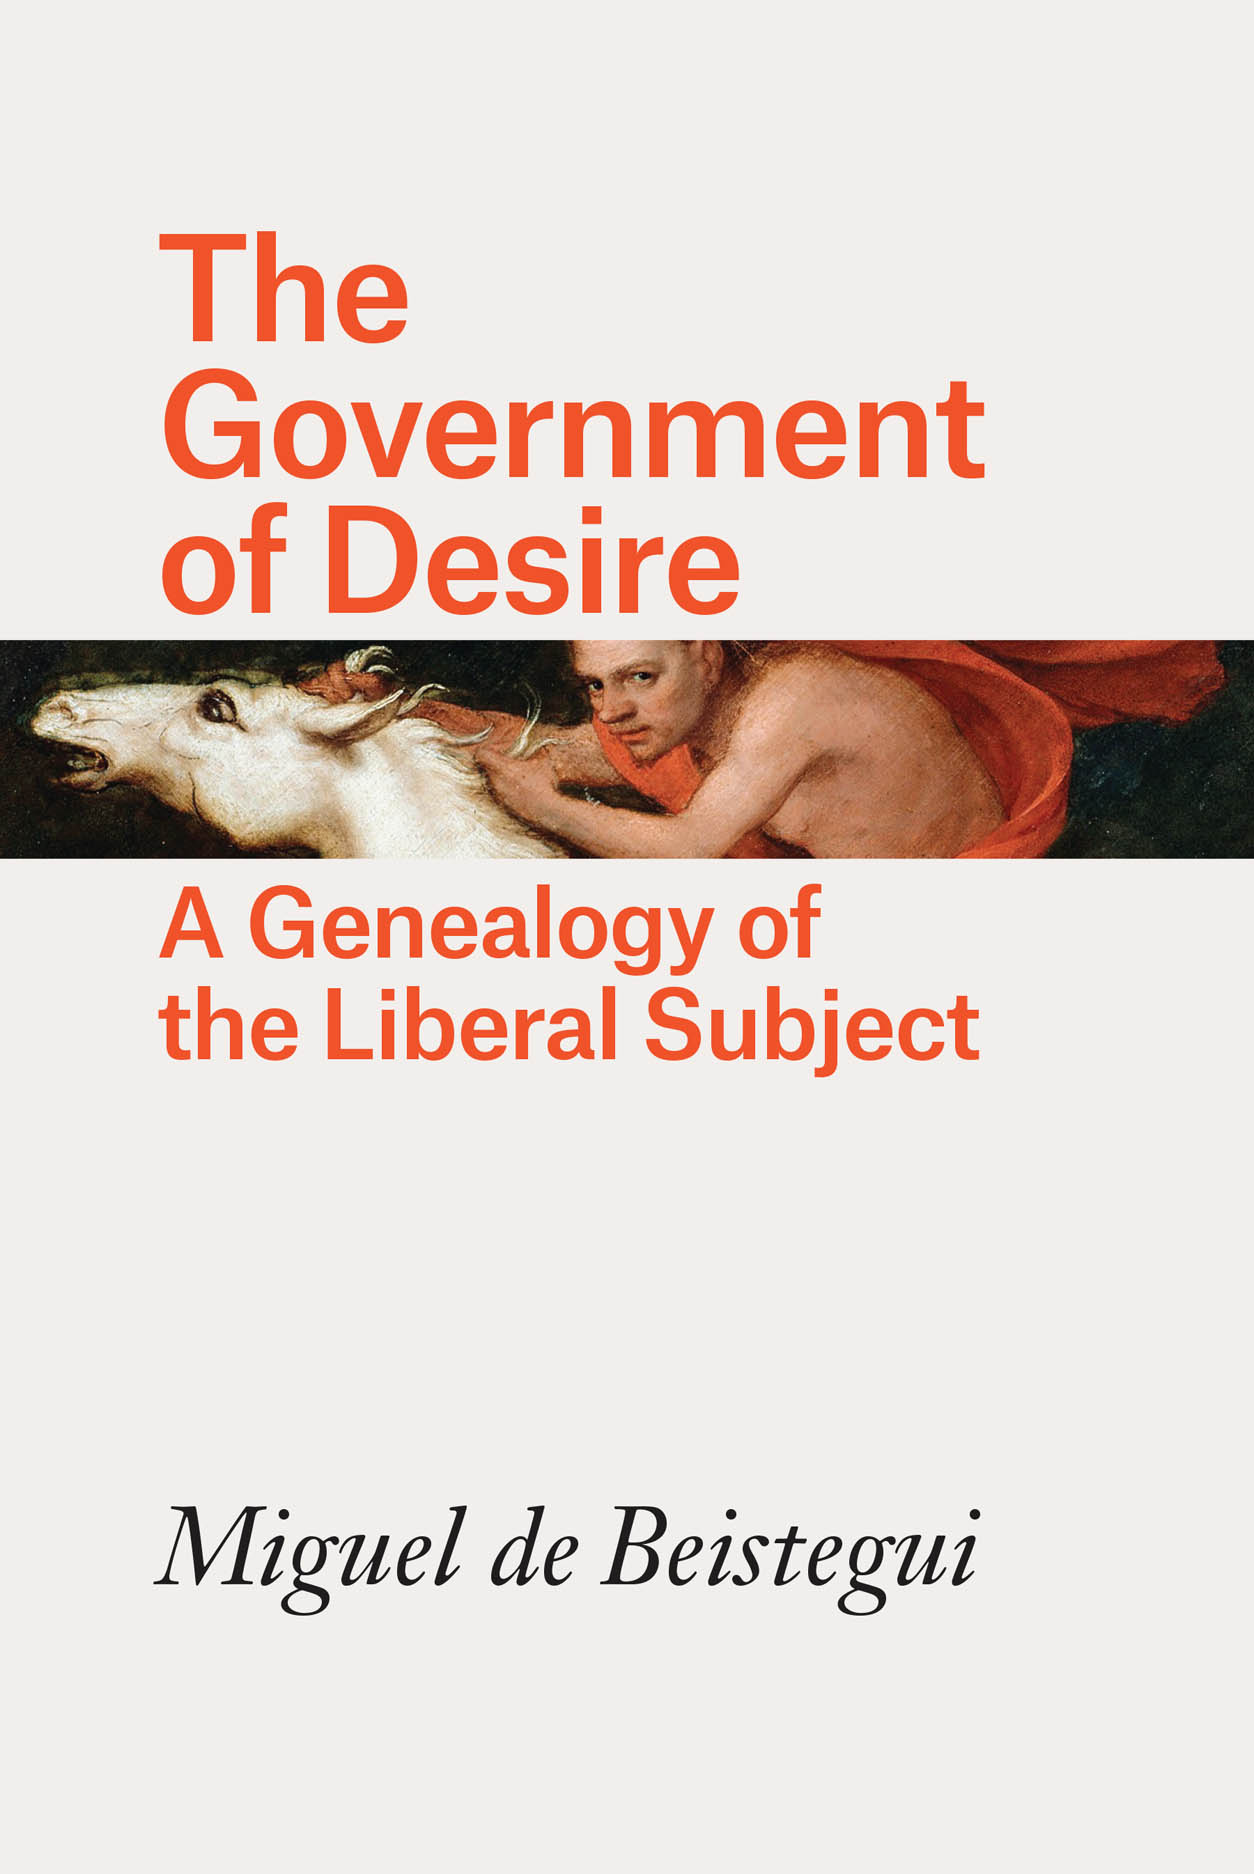 The Government of Desire: A Genealogy of the Liberal Subject